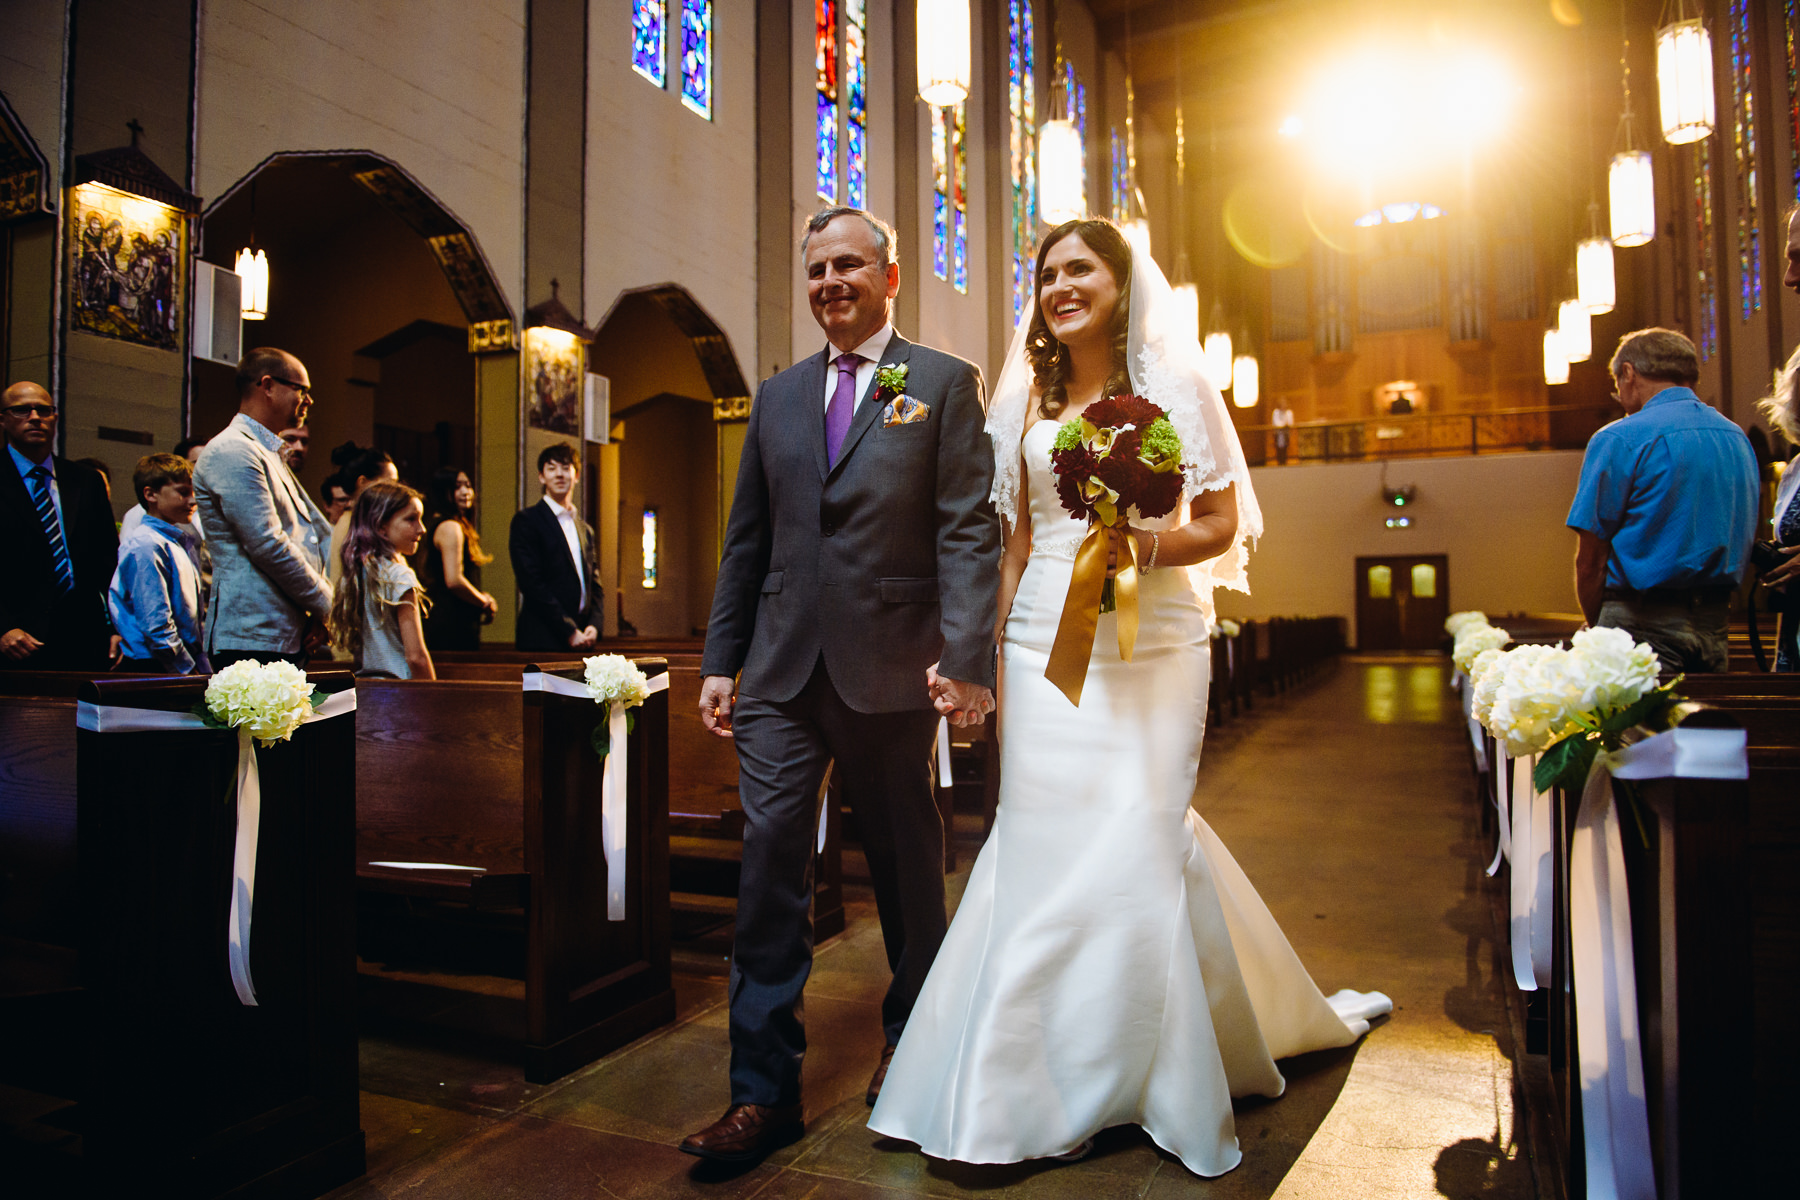 St. Joseph Catholic Church wedding ceremony